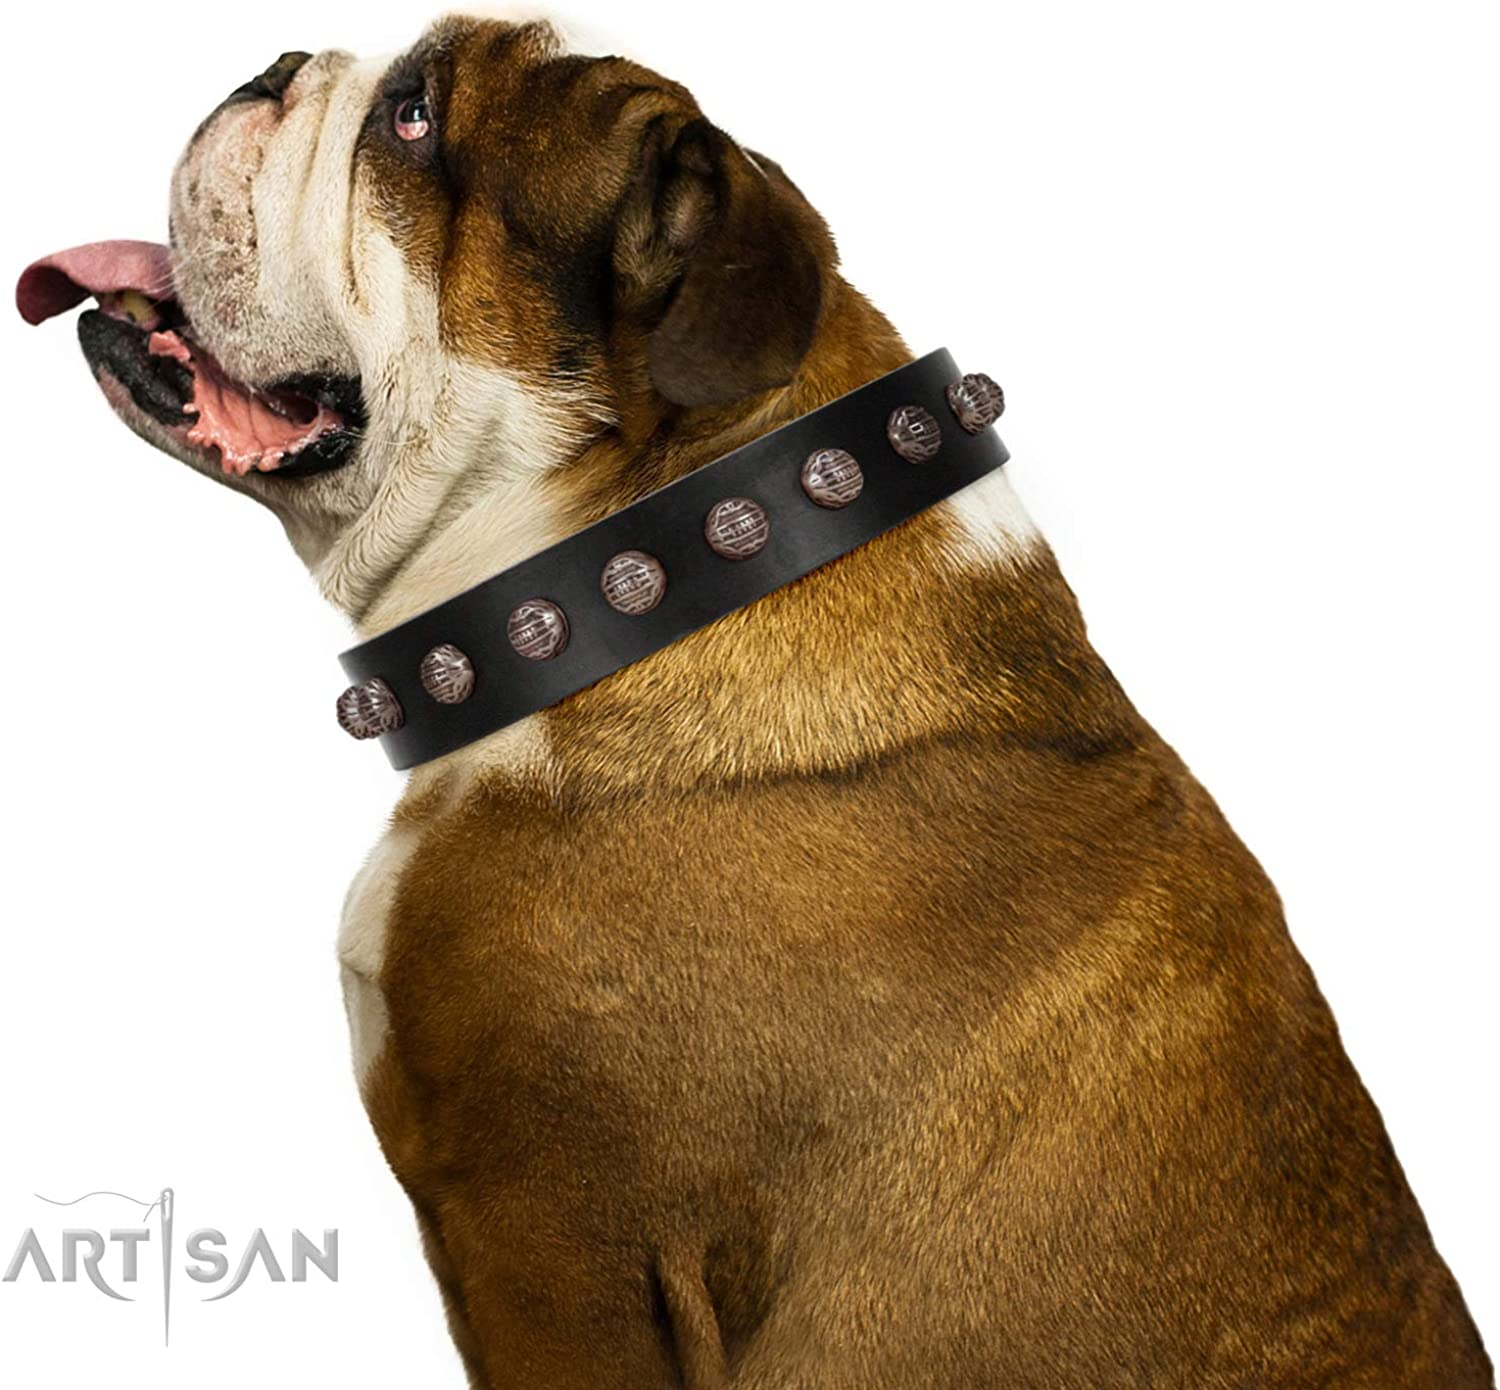 FDT Artisan 32 inch Designer Handmade Black Leather Dog Collar  Bizarre Affection  1 1 2 inch (40 mm)  with Gift Packaging